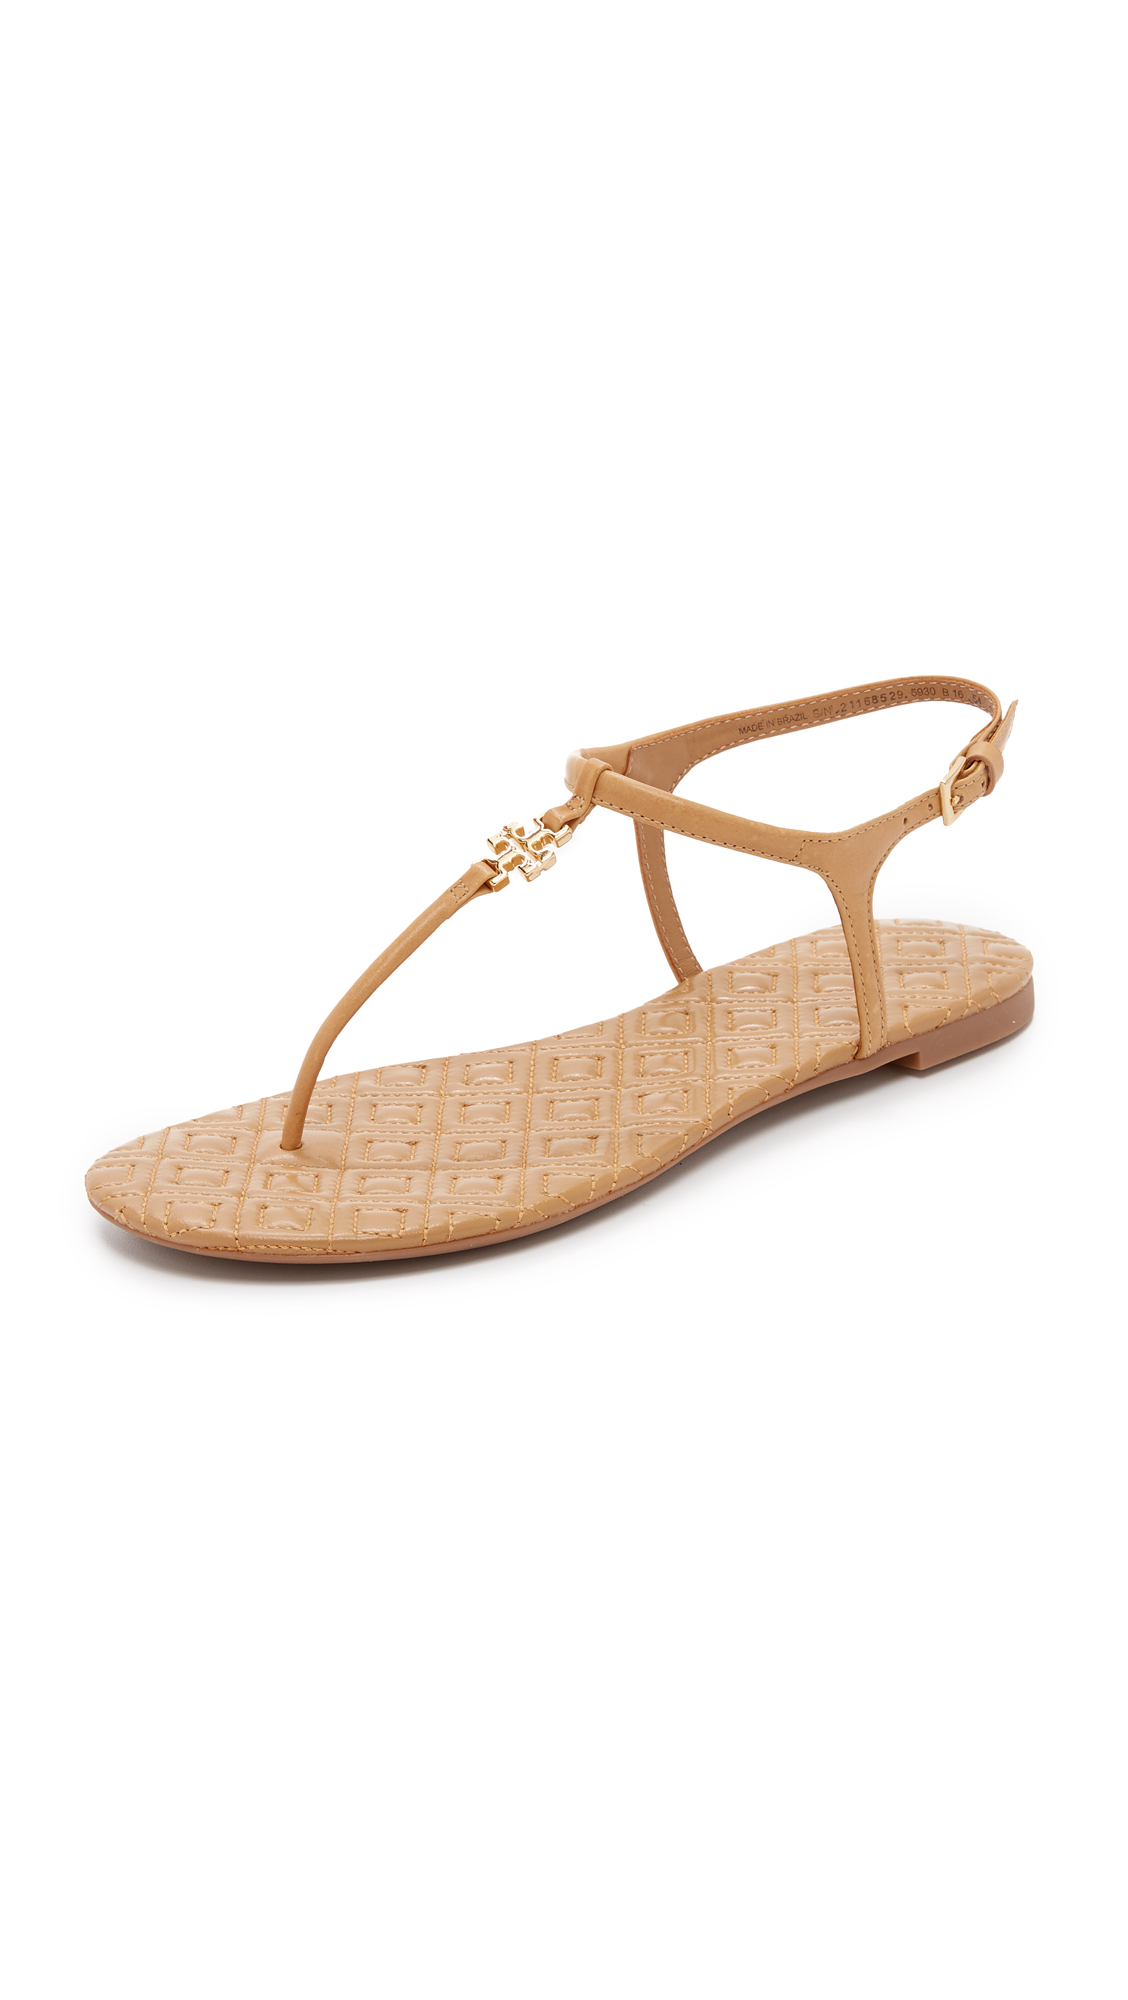 d8e5dcf759c Gallery. Previously sold at  Shopbop · Women s Tory Burch Marion Women s  Ancient Greek Sandals ...